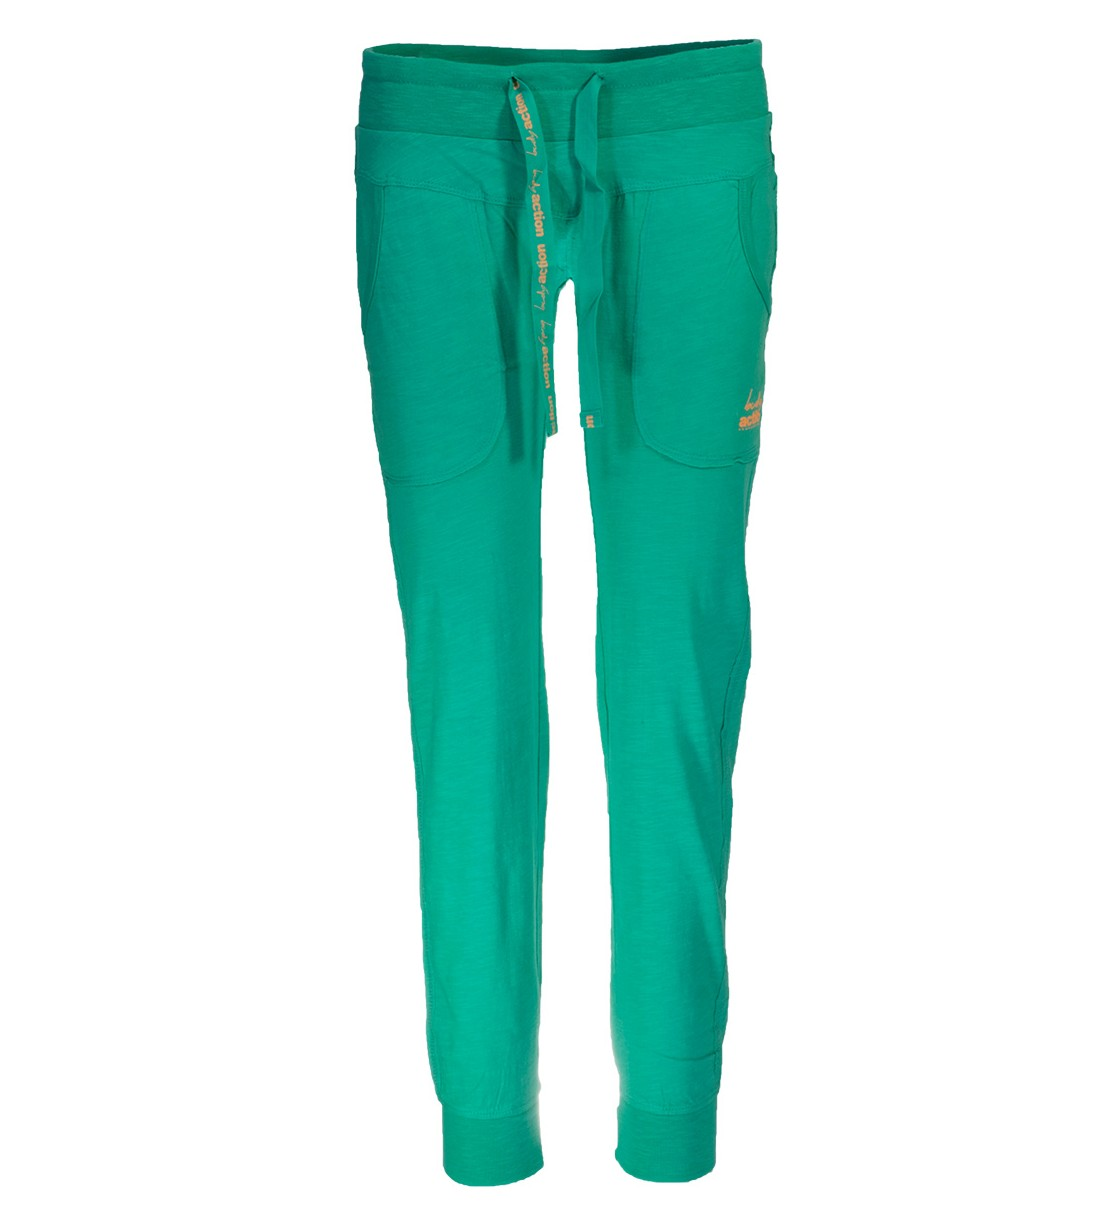 Body Action Γυναικείο Αθλητικό Παντελόνι Women Relaxed Fit Pants 021502